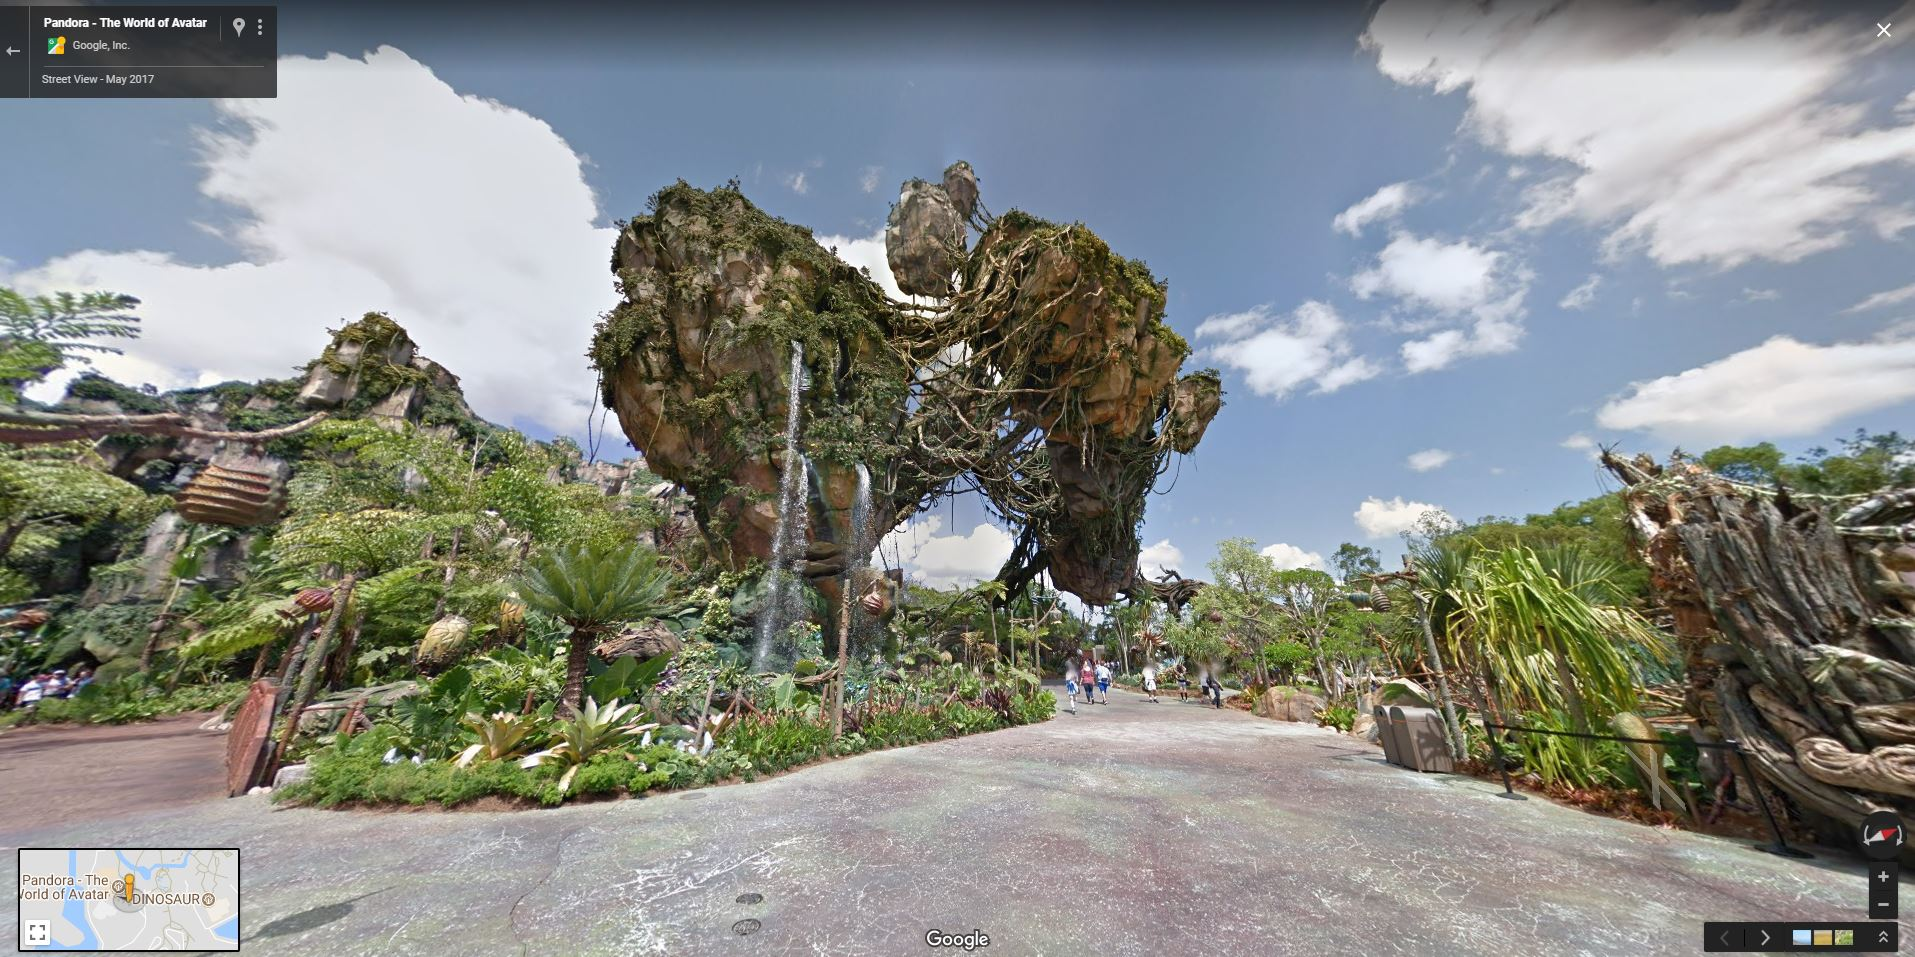 Google Street View for Pandora - The World of Avatar